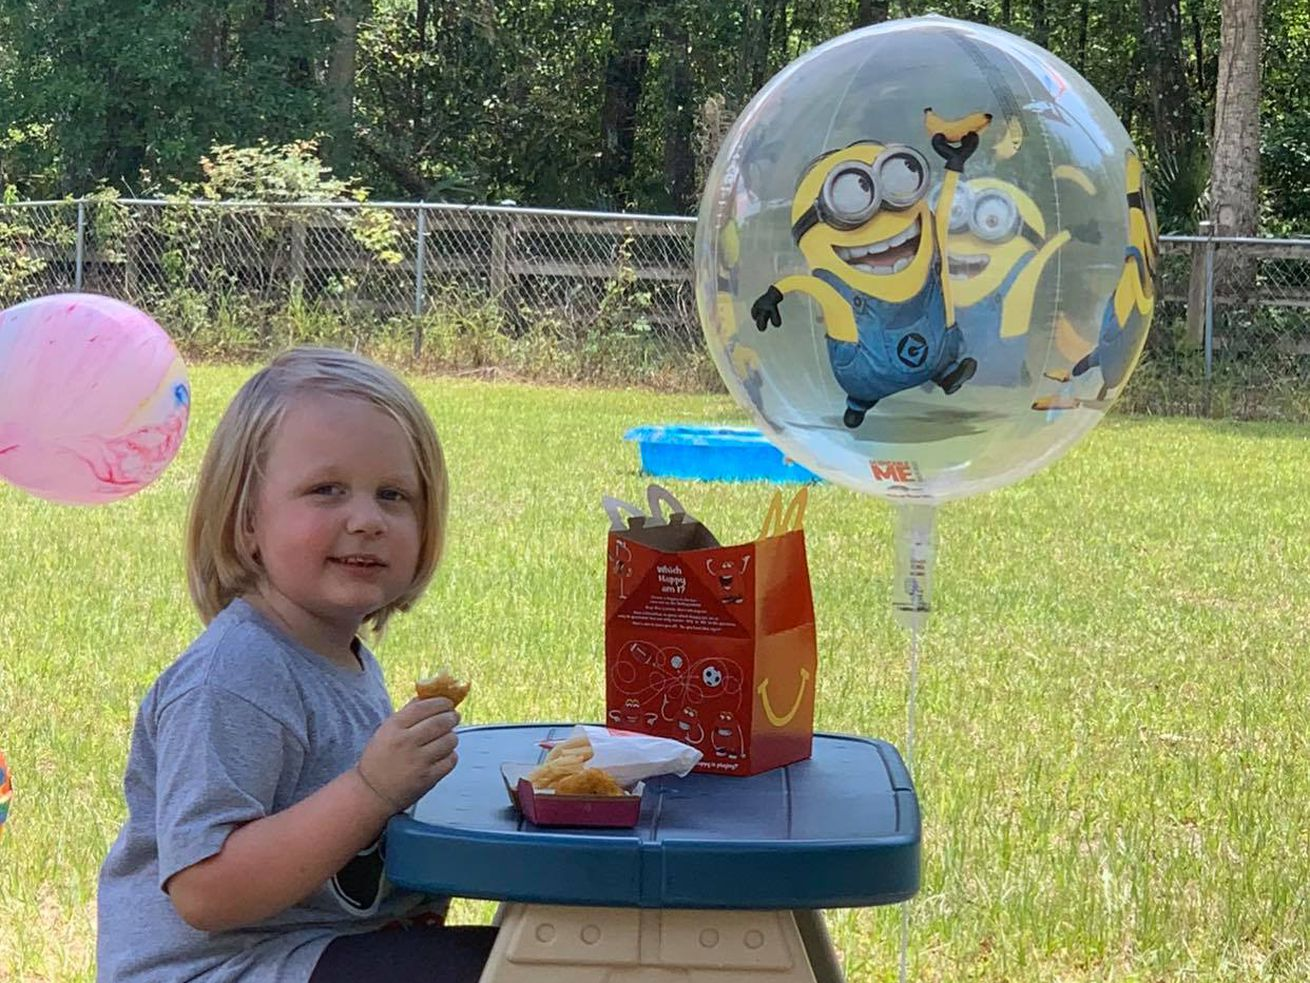 4-year-old Aydan munches on a birthday lunch of a McDonald's happy meal. Later on, neighbors would flood his street with birthday wishes and balloons to celebrate a most unusual birthday.